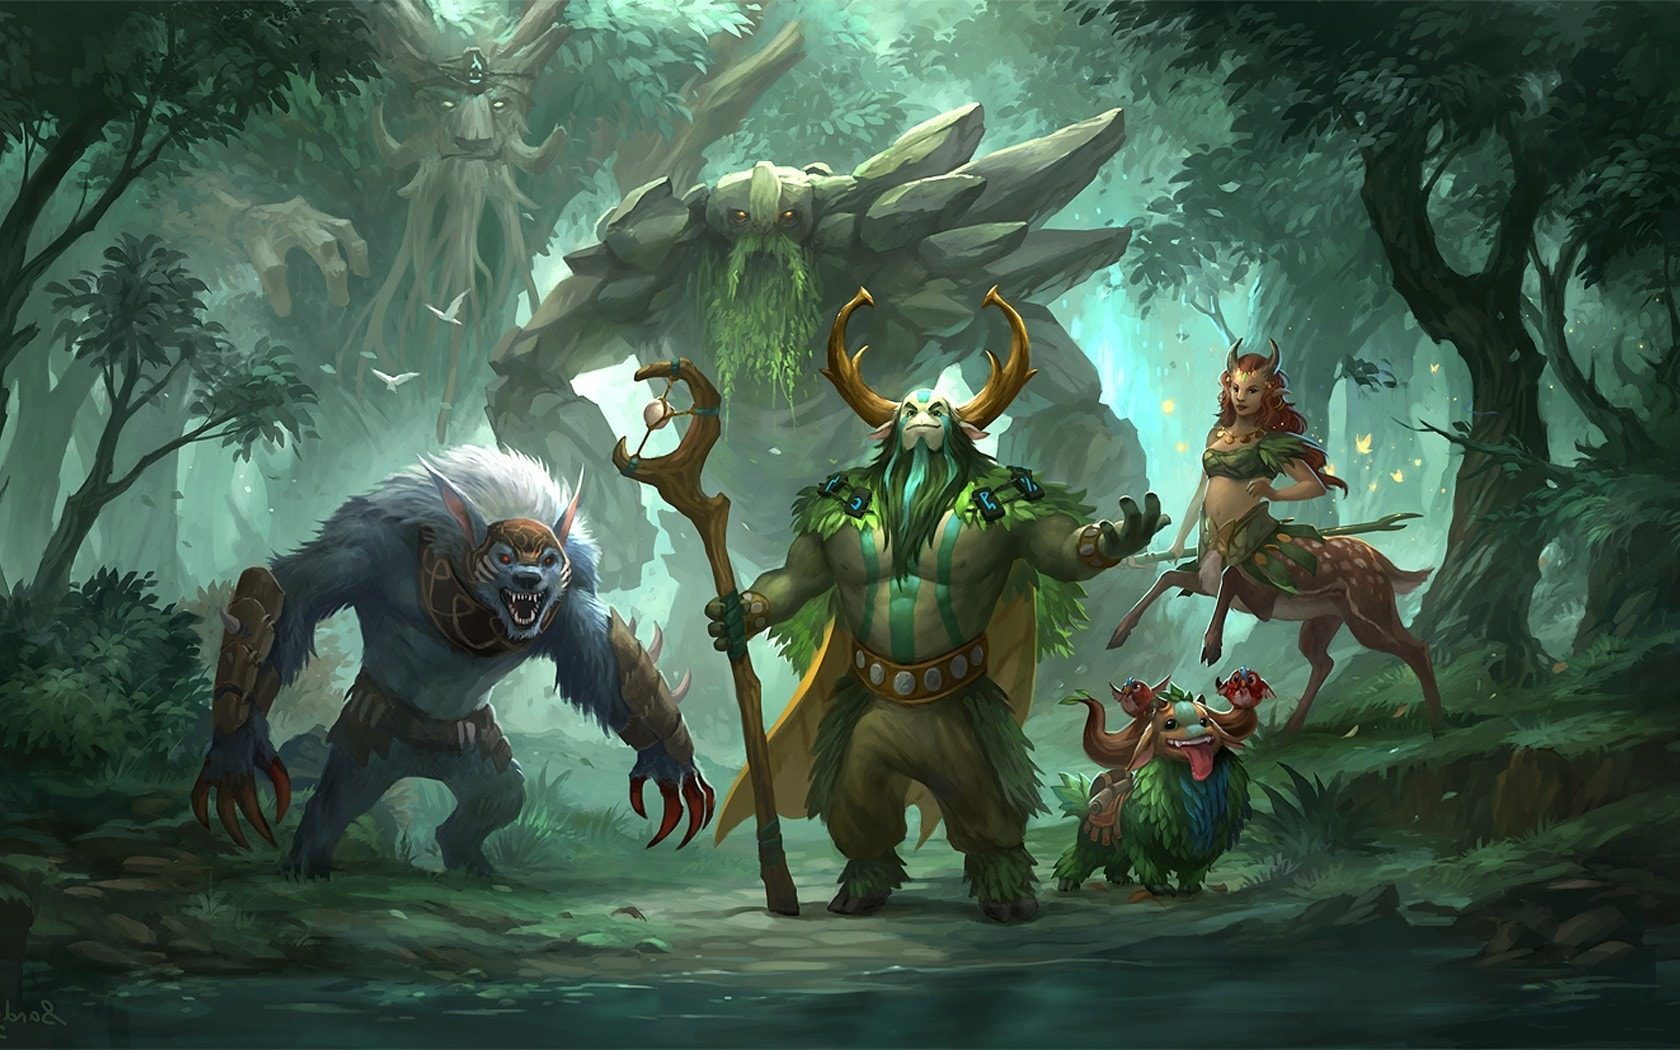 Dota2 : Treant Protector widescreen for desktop